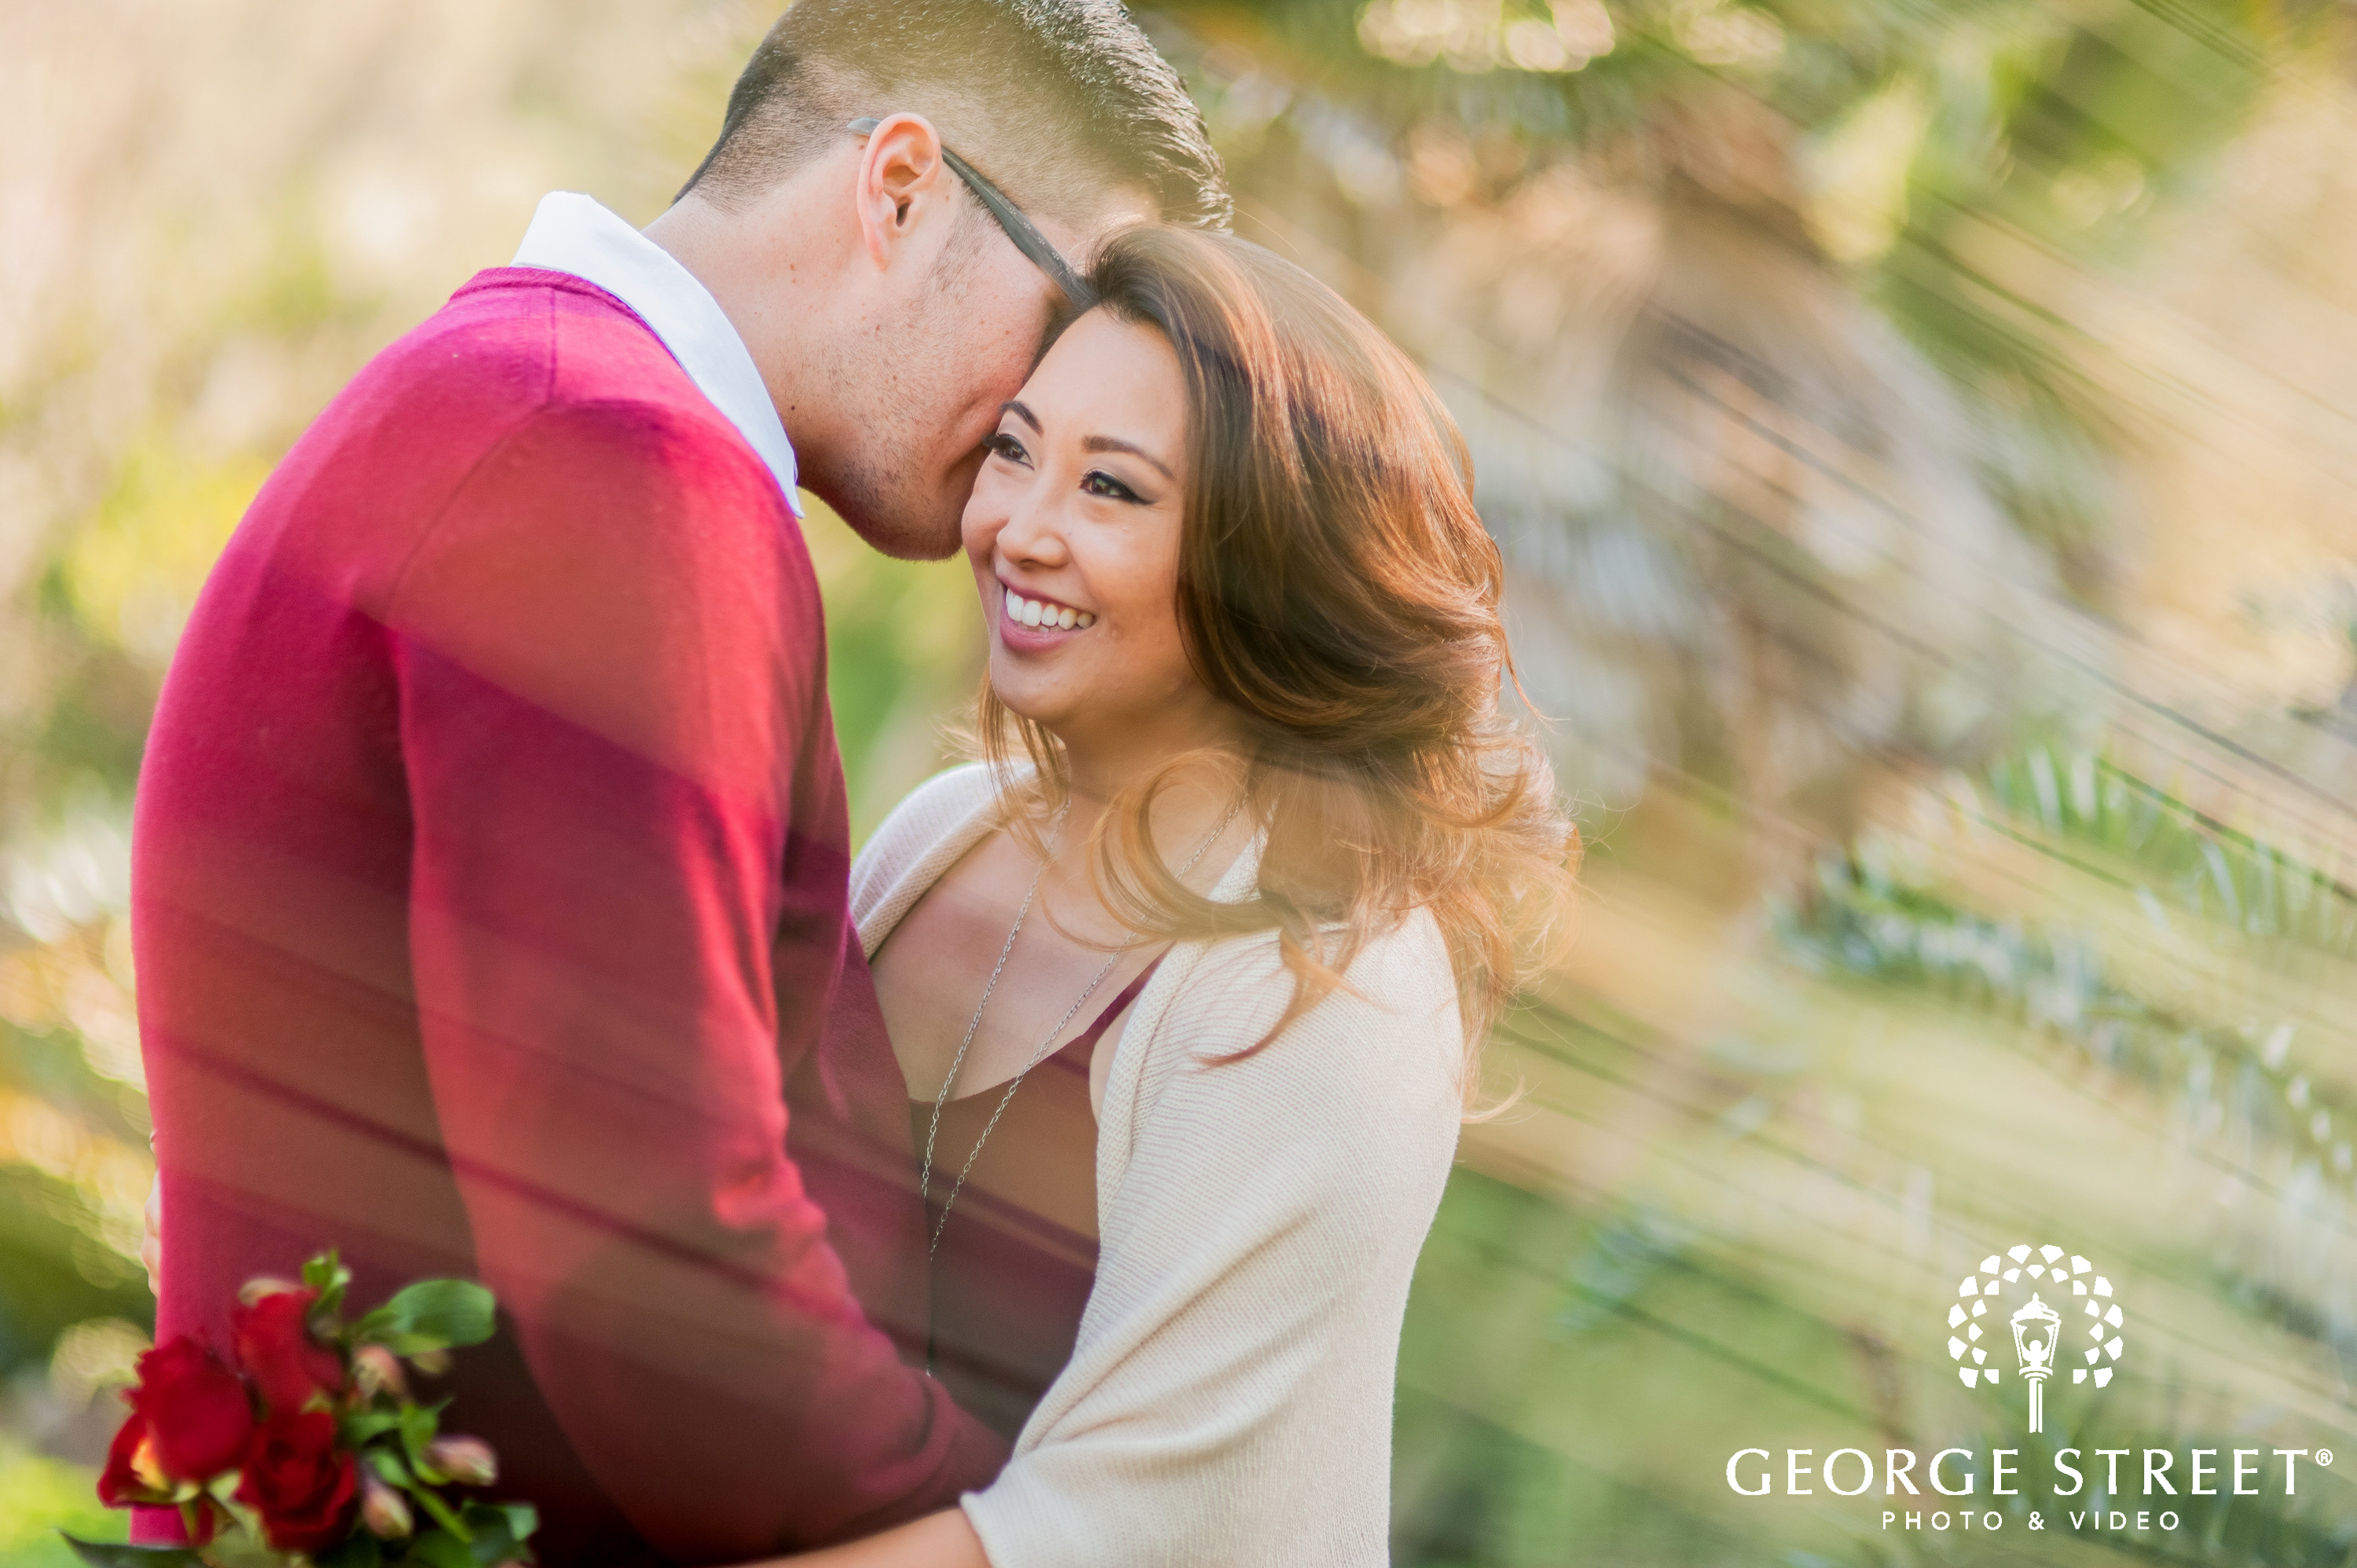 George Street's Top 6 Engagement Session Locations in San Francisco